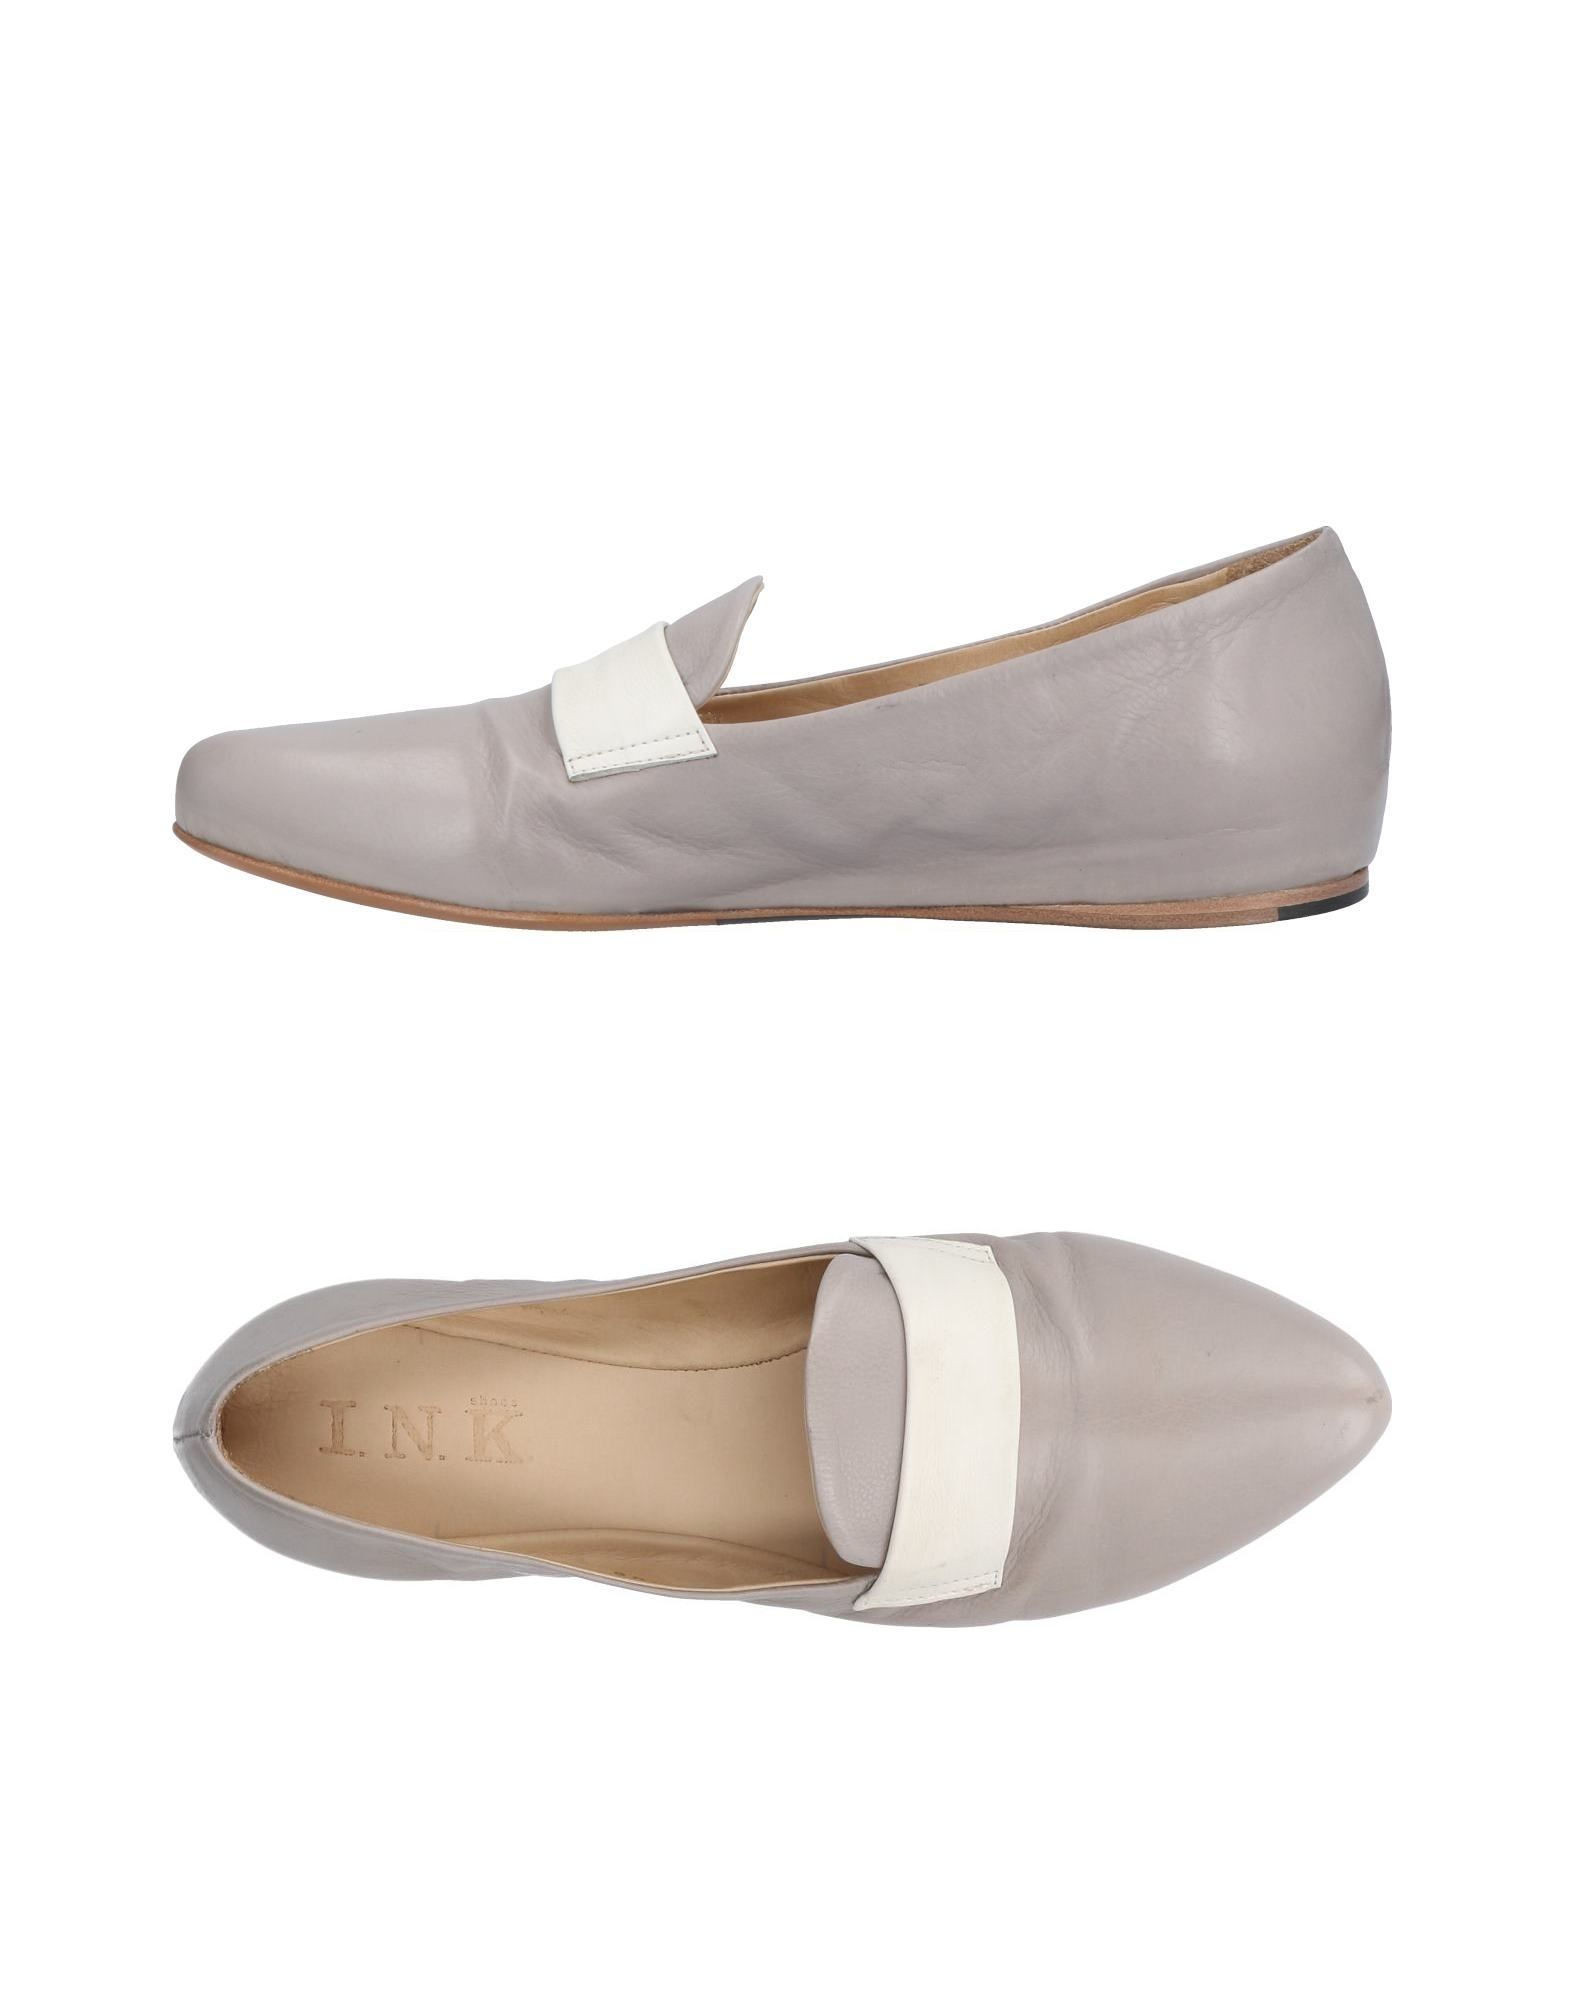 Mocassino I.N.K. Shoes Donna Donna Shoes - 11468614RB fdb365